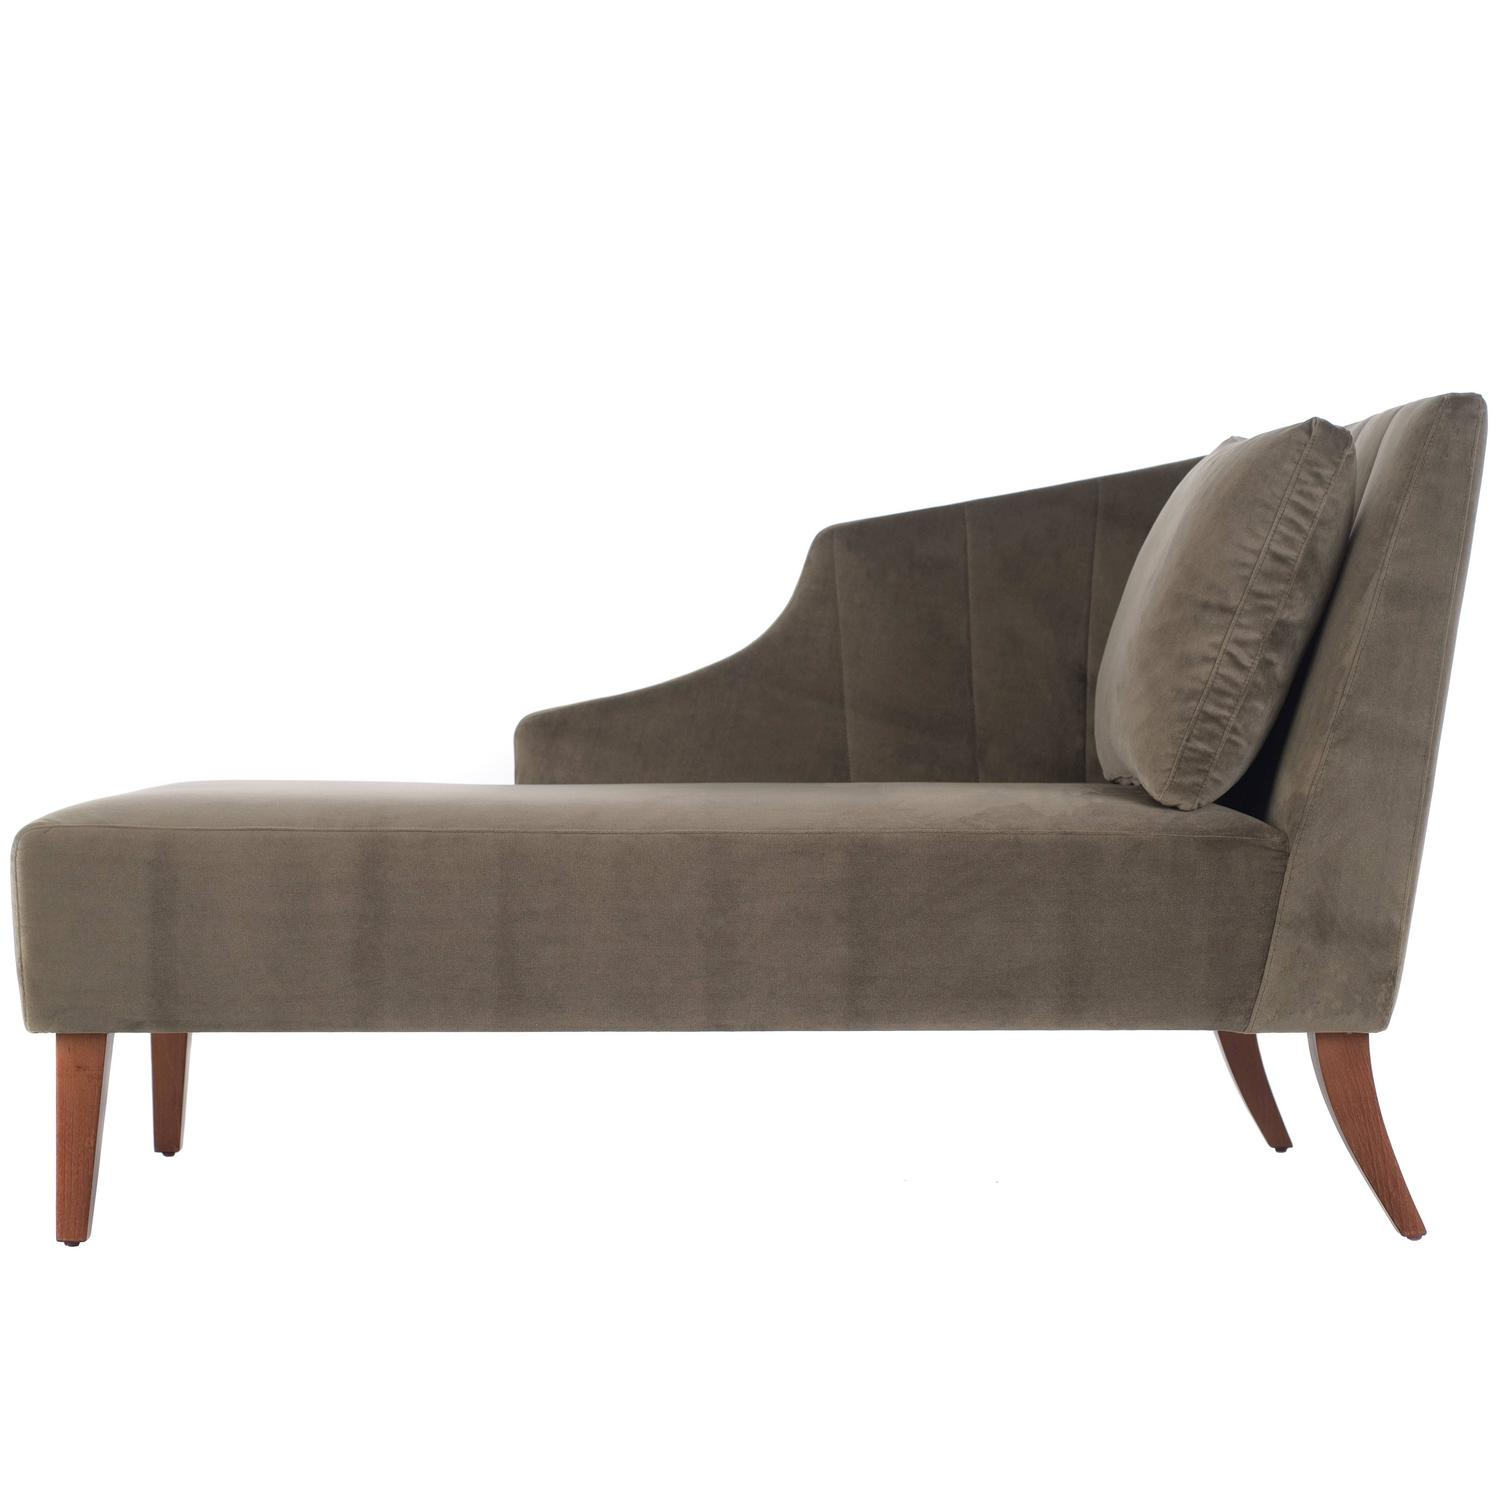 Italian modern grey velvet and ash classic chaise longue for Chaise longue furniture